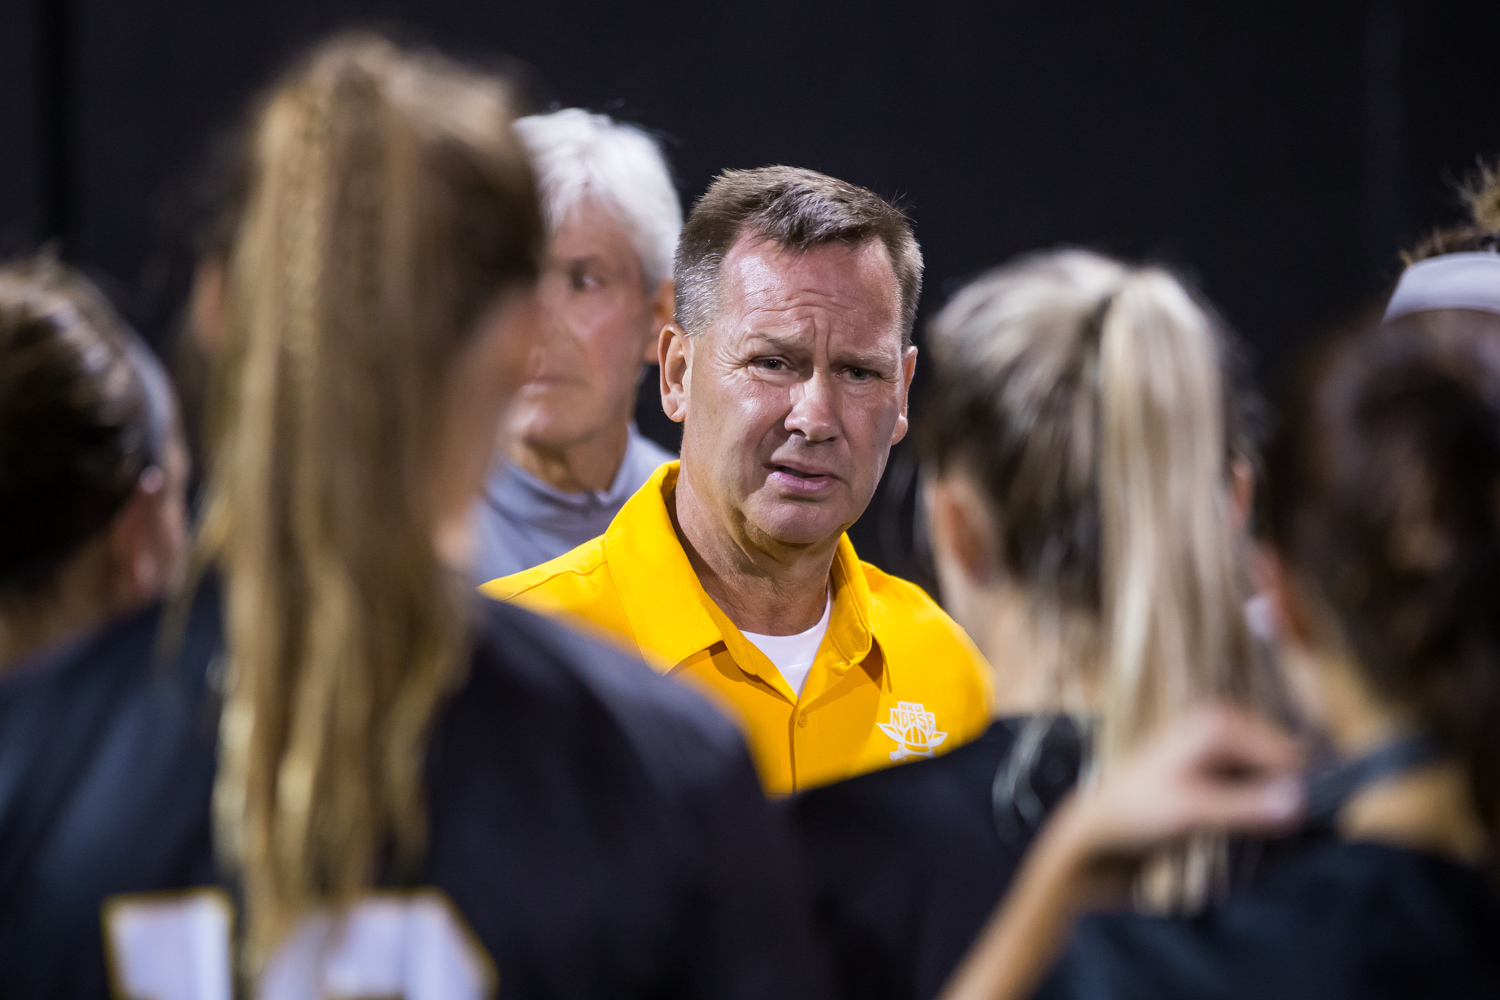 Women%27s+Soccer+Head+Coach+Bob+Sheehan+talks+to+the+team+after+a+loss+against+Ohio+University.+The+Bobcats+won+1-0+and+had+7+shots+on+goal+to+the+Norse%27s+1.